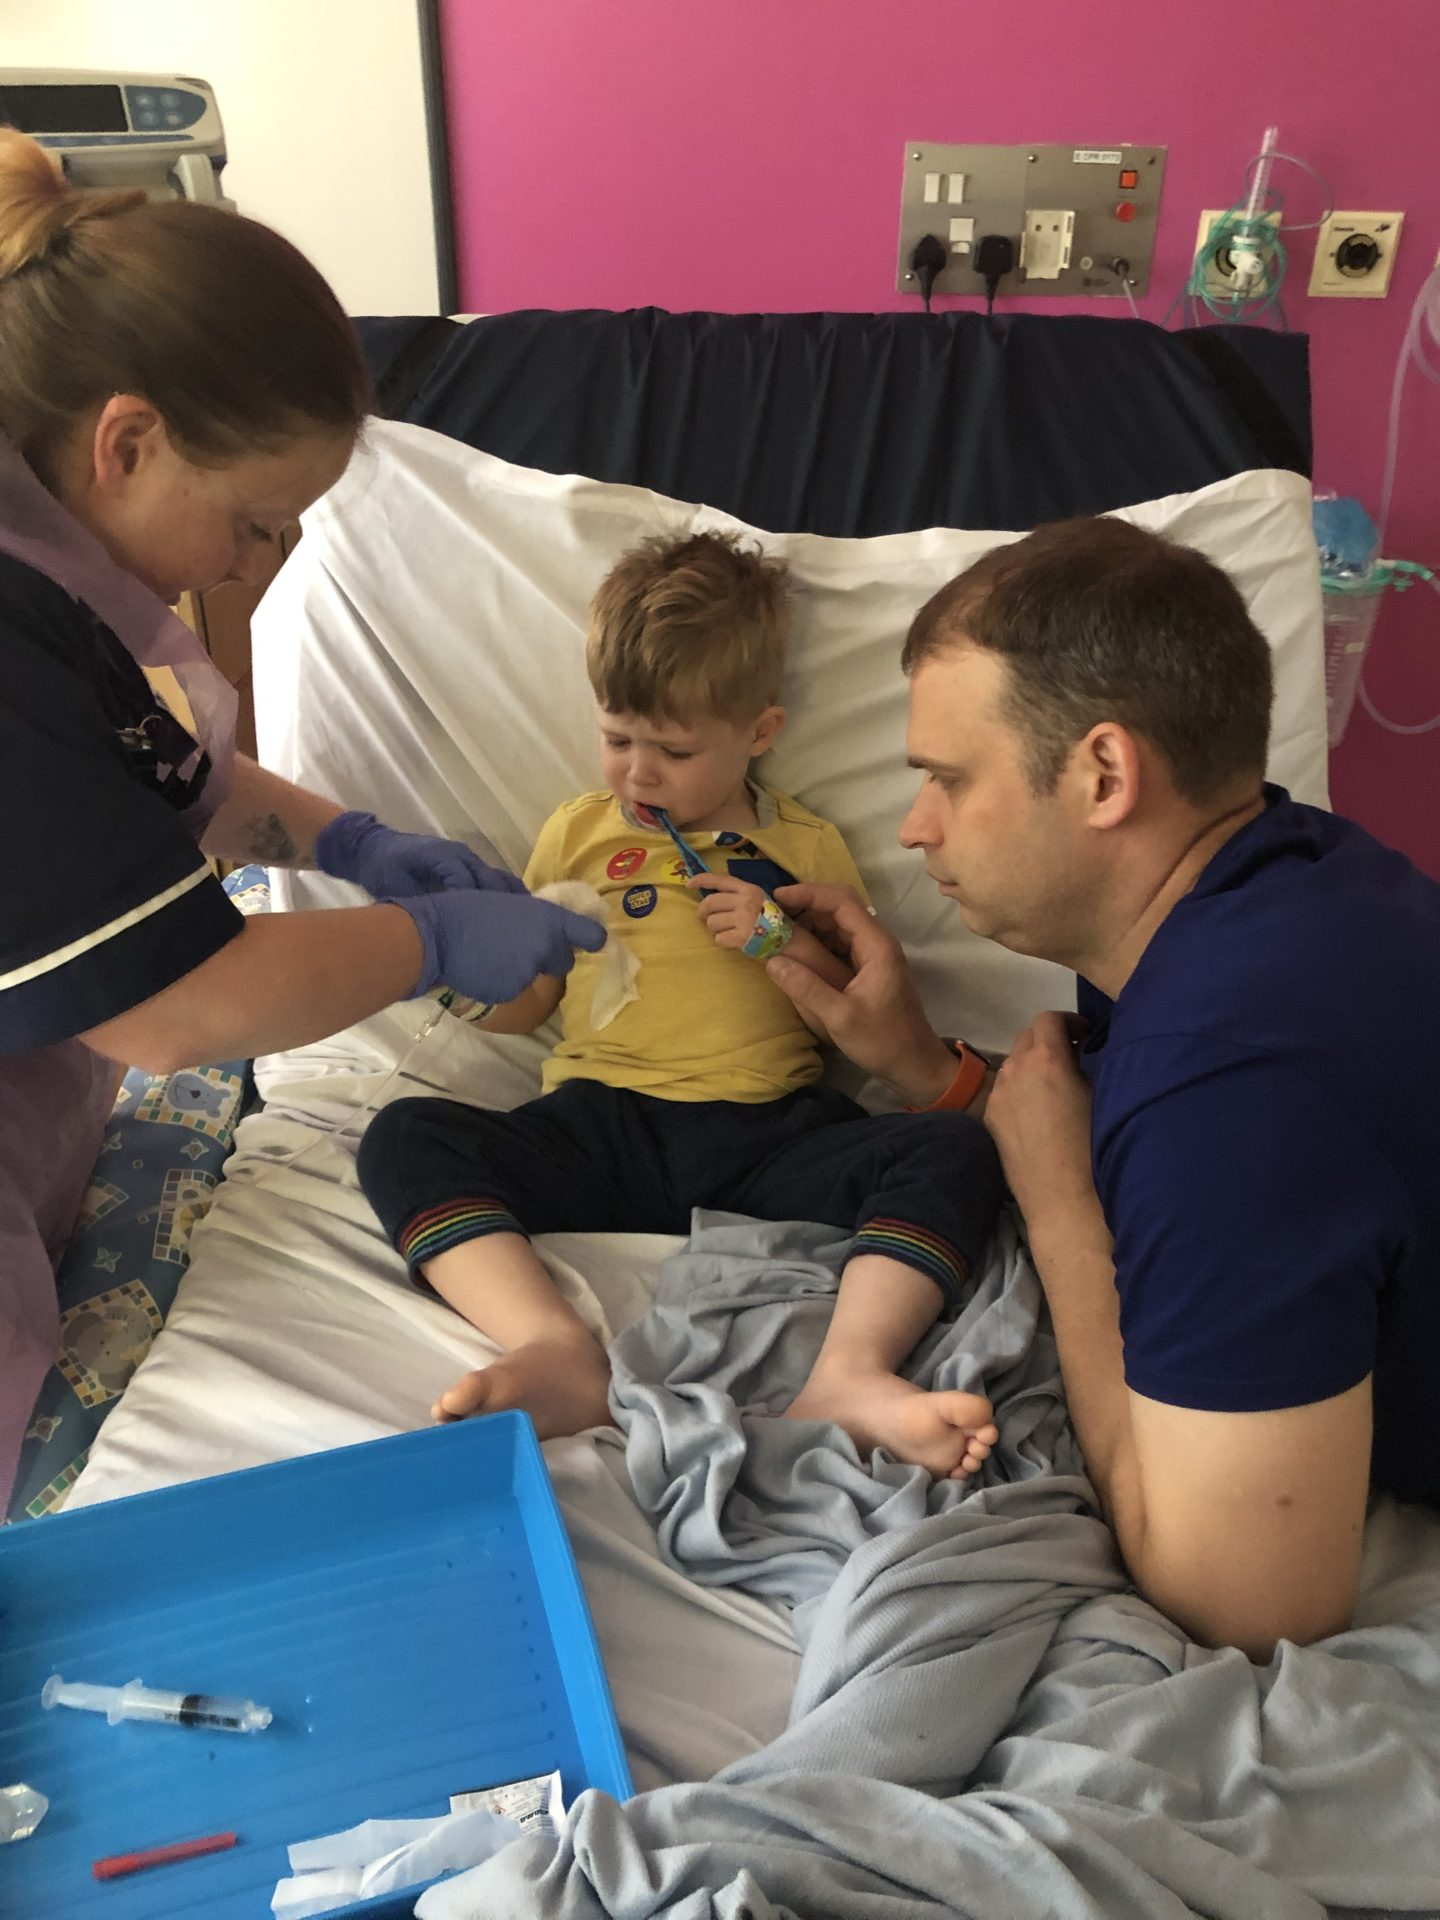 Artie, 3 years old having his fluids fitted to his newly fitted and very uncomfortable cannula.